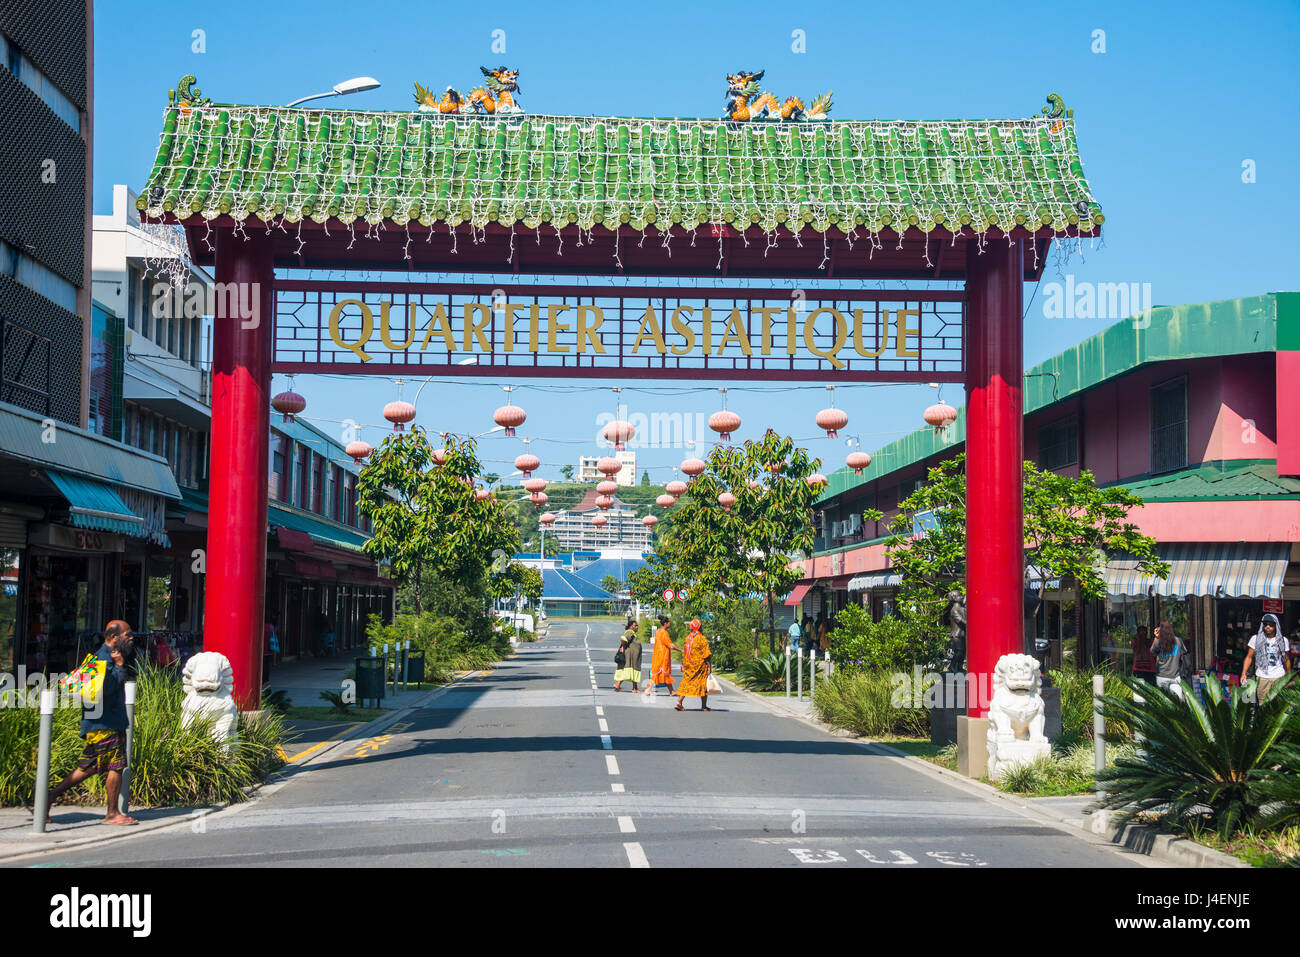 Entrance to the Chinese Quarter, Noumea, New Caledonia, Pacific - Stock Image